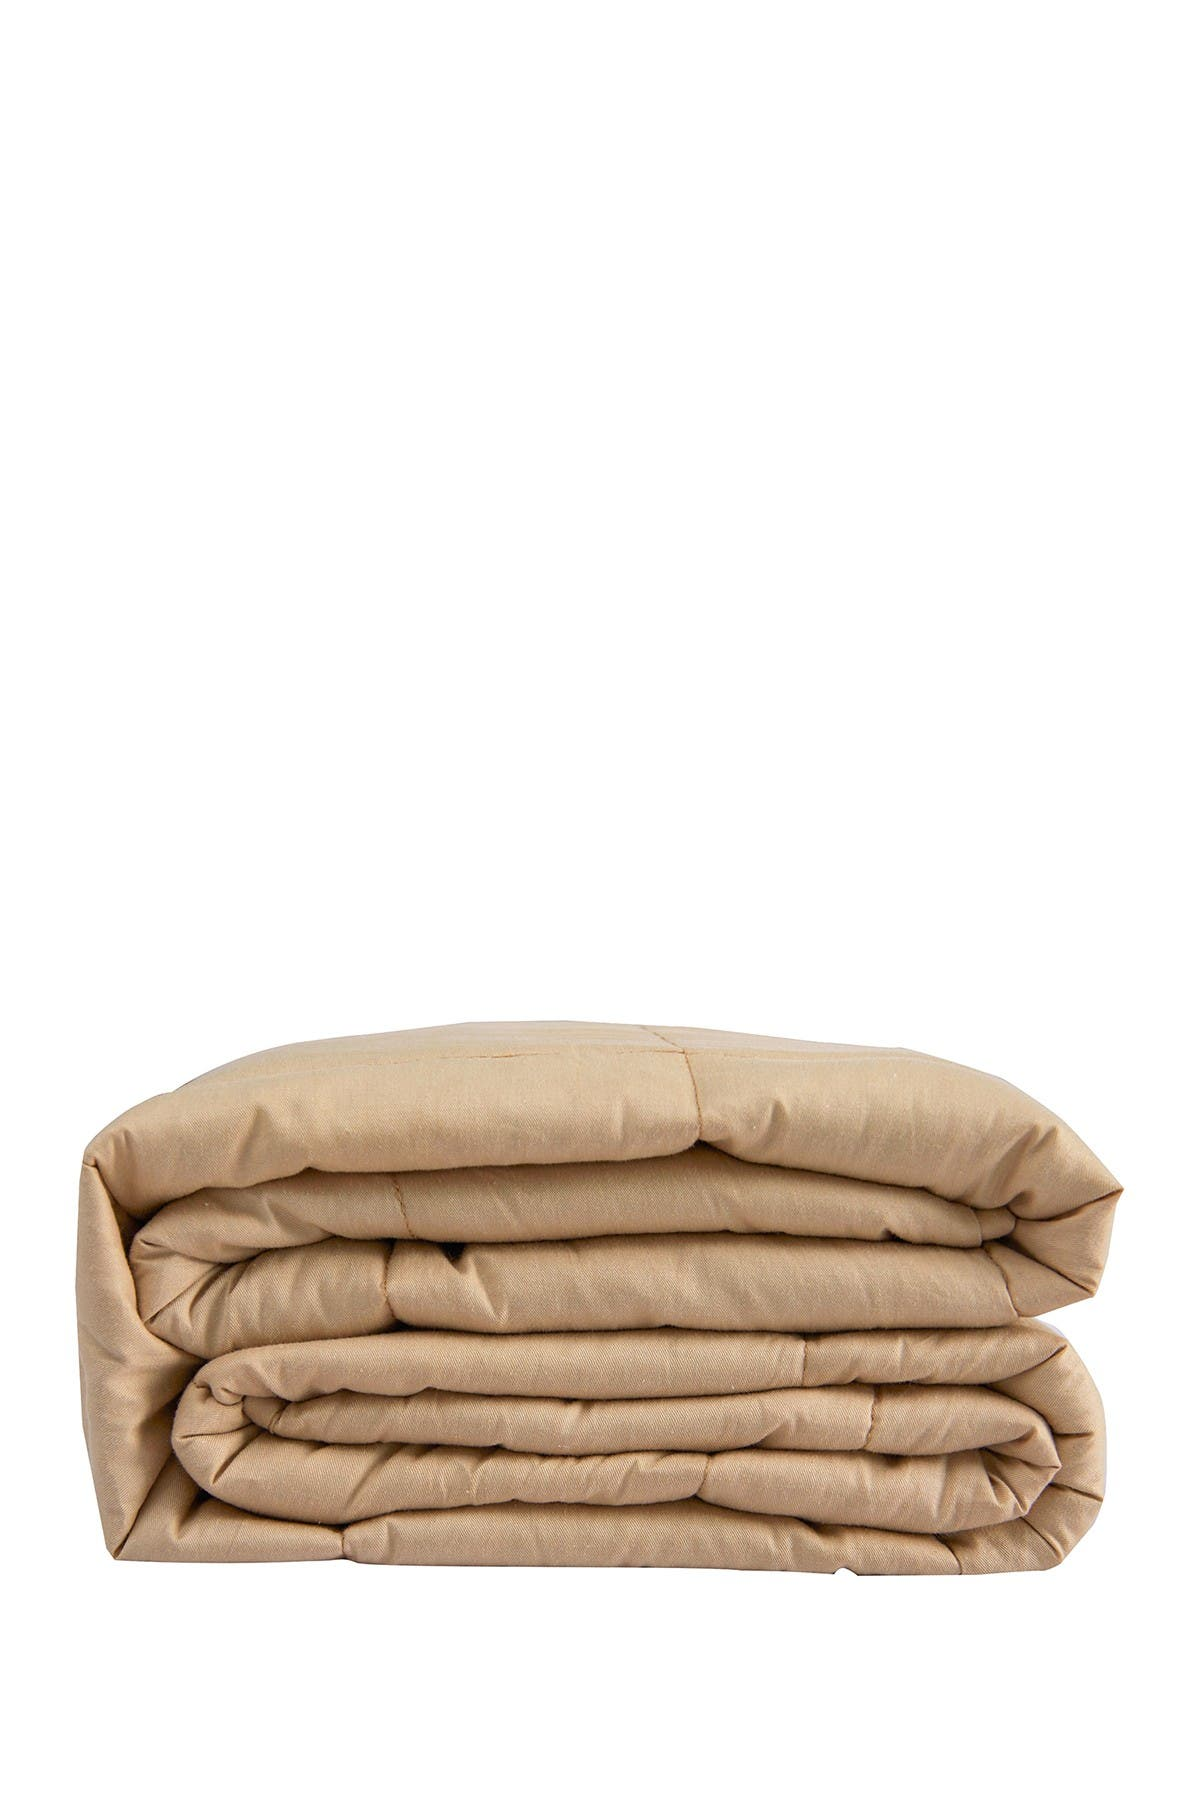 """Image of PUR SERENITY 20 lbs Cotton Weighted Blanket 48""""x 72""""- Tan"""